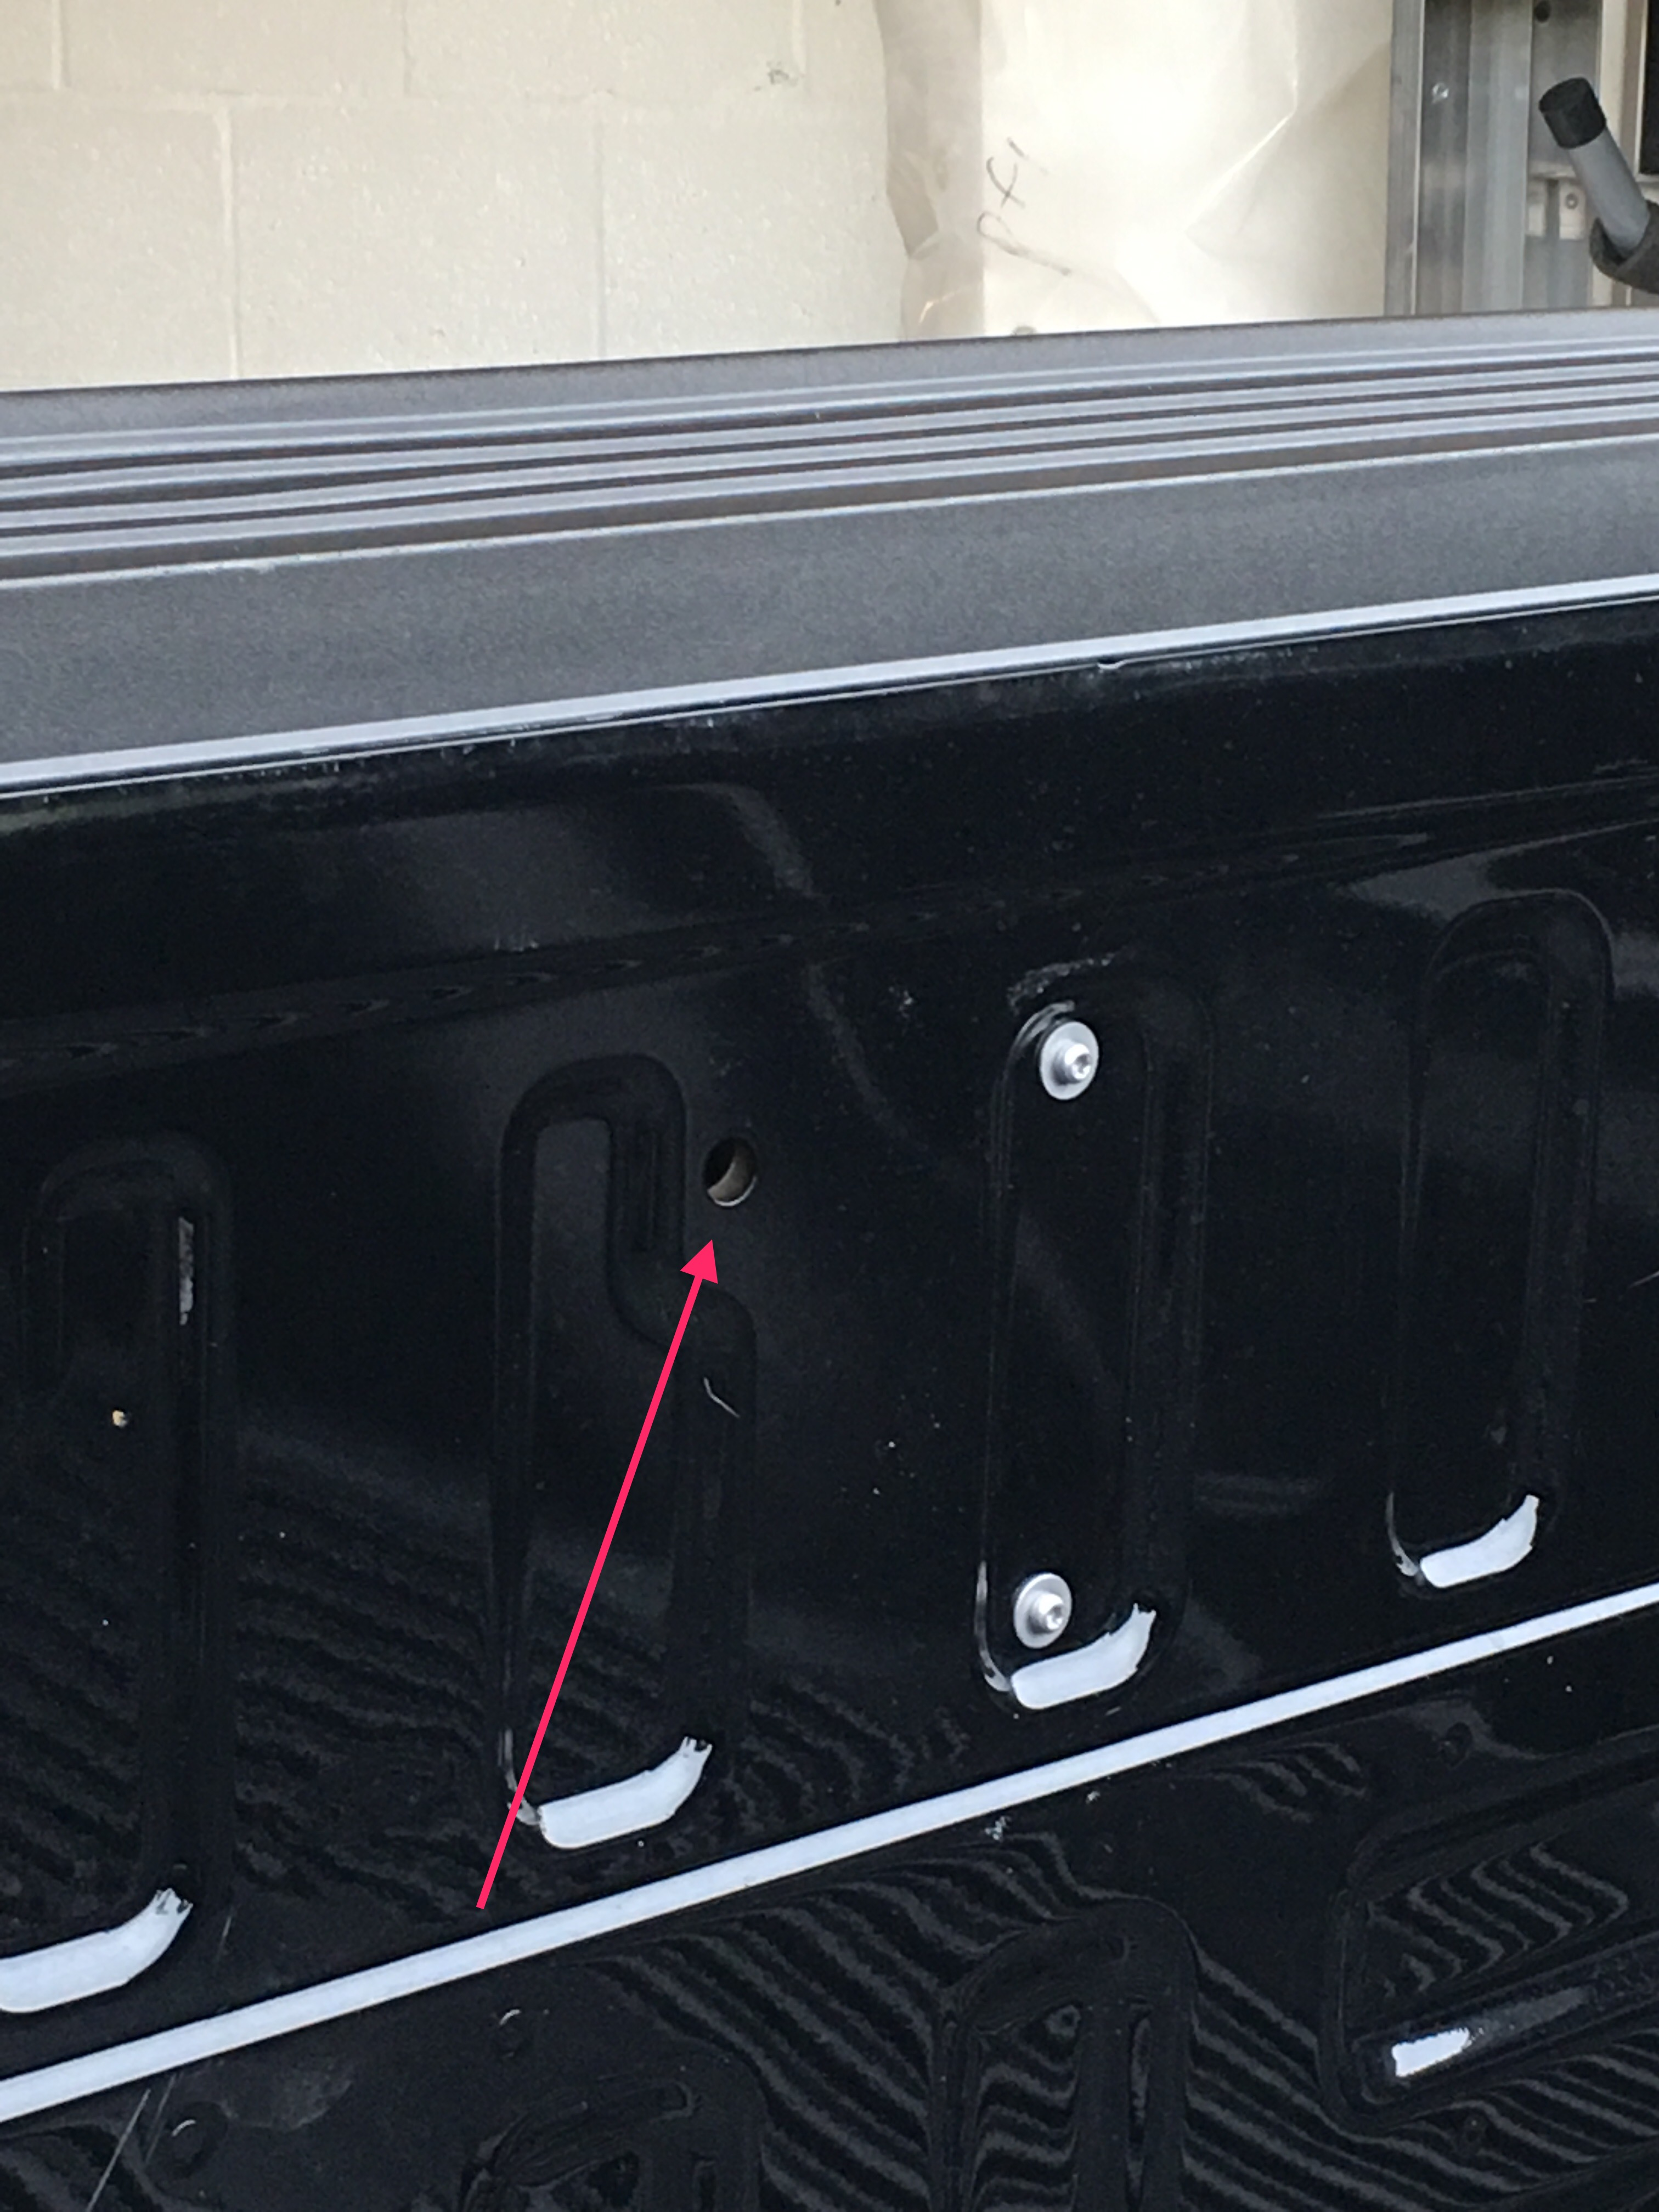 F150 Bed Drain Holes  Ford F150 Forum  Community of Ford Truck Fans